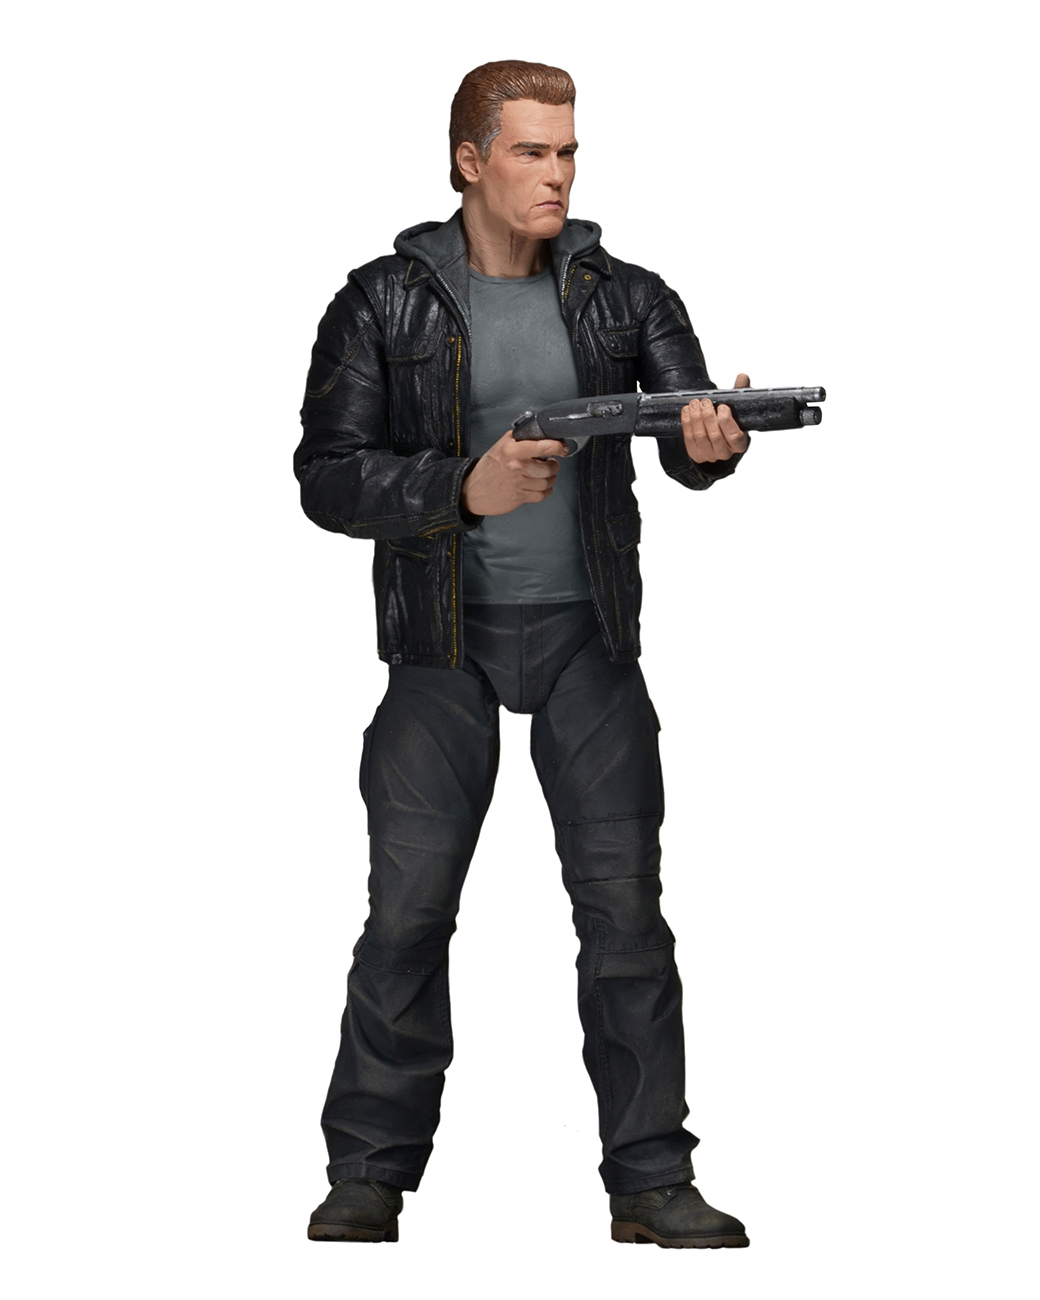 Terminator, Galaxy figurines vous propose sa collection de figurines, bustes,